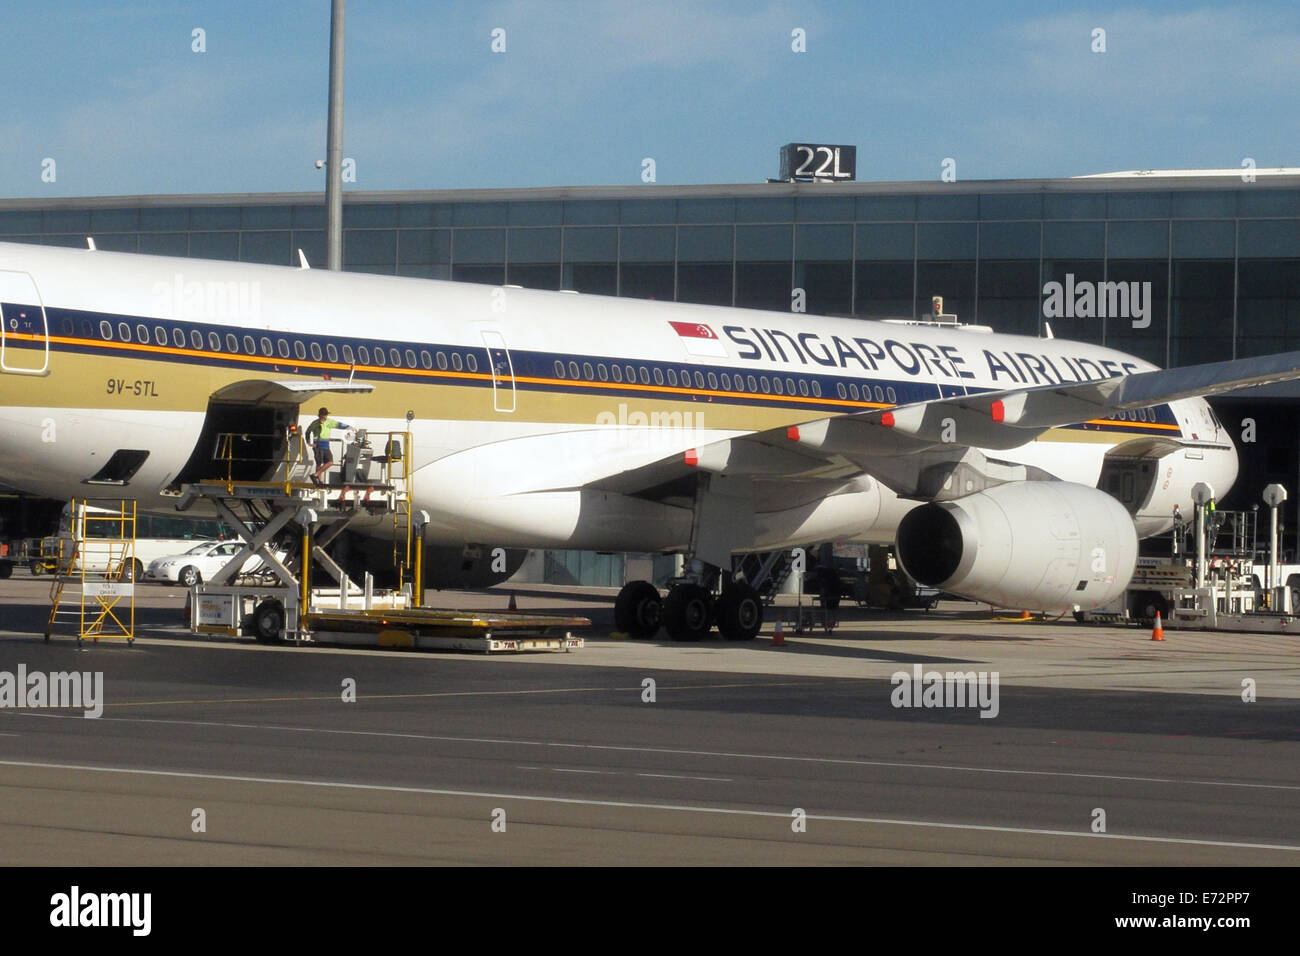 Singapore Airlines plane being loaded with luggage on the tarmac of Adelaide Airport in Australia. - Stock Image